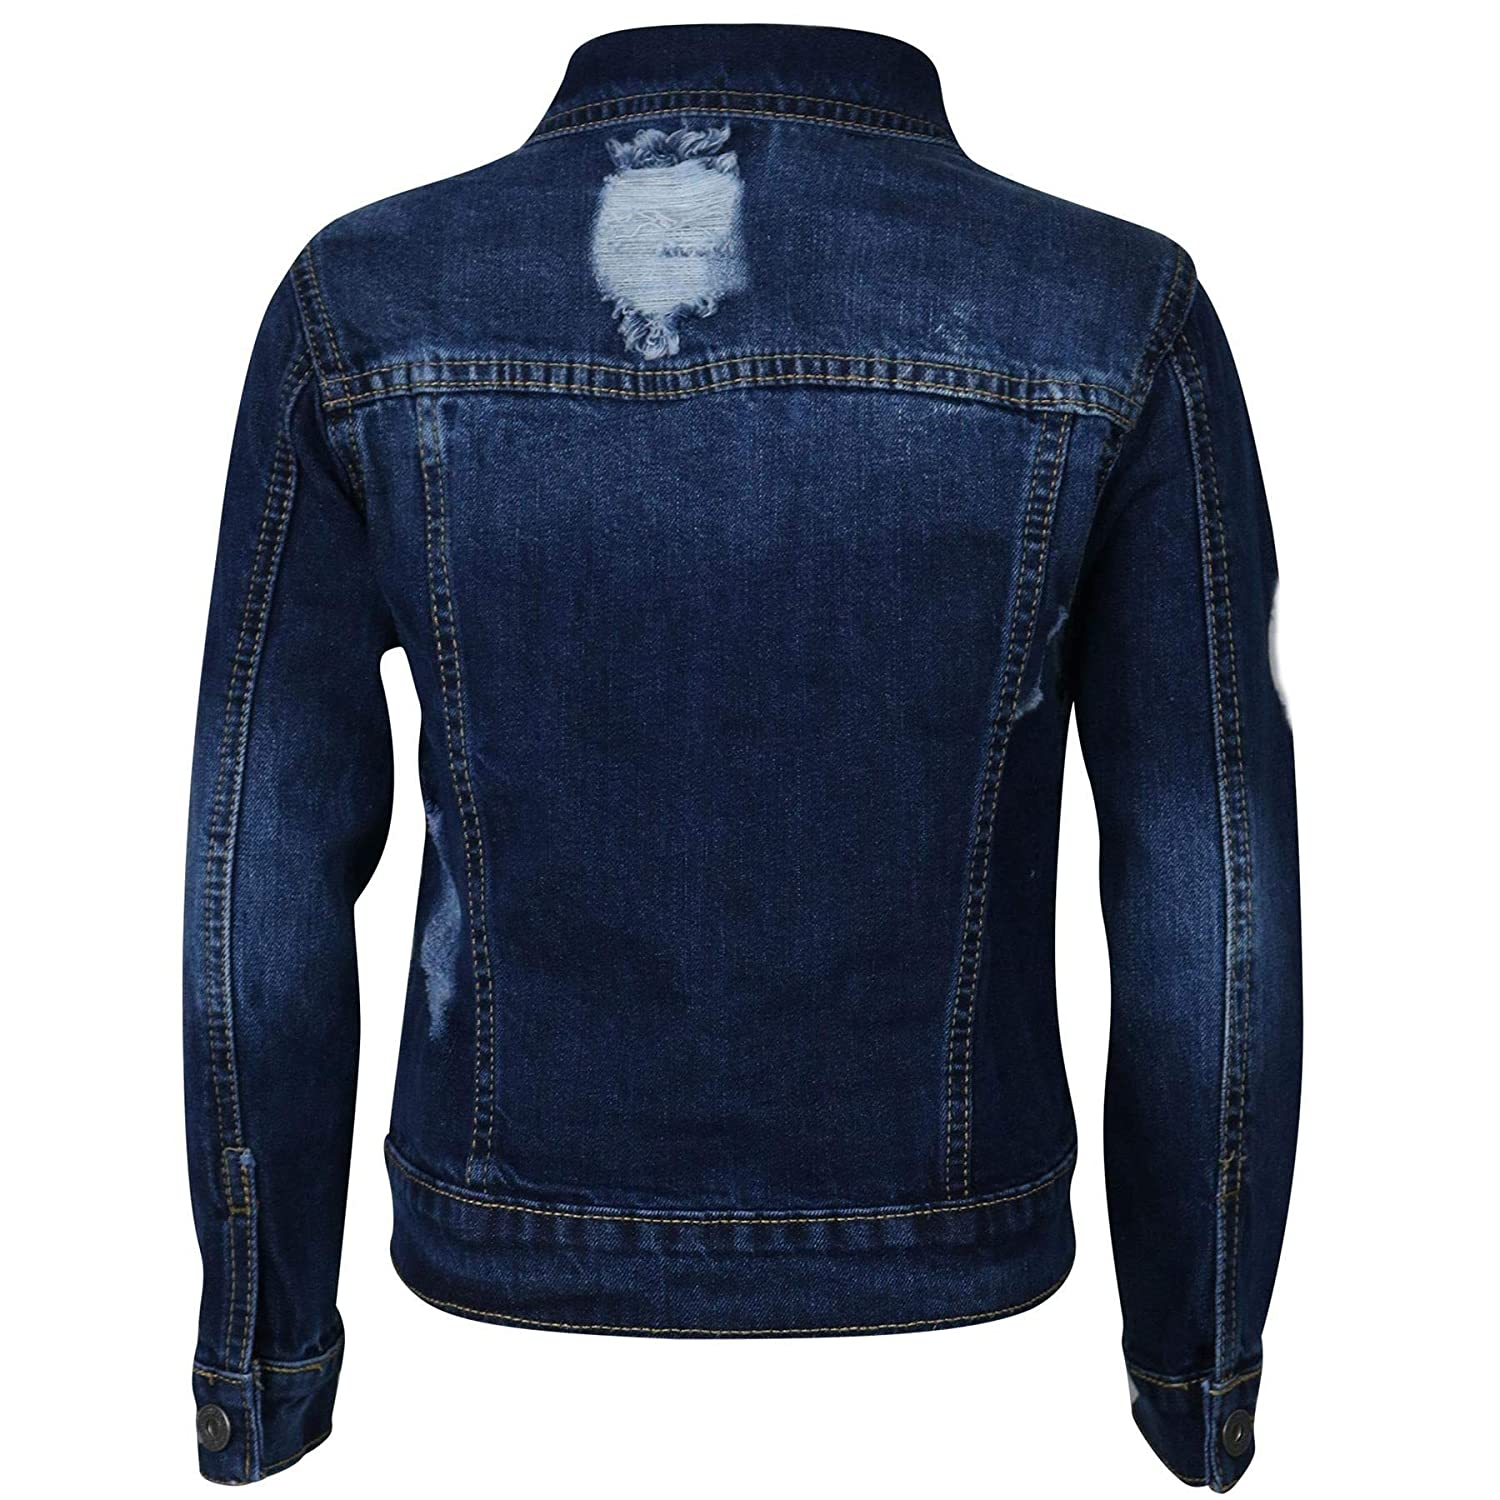 Kids Boys Denim Jackets Designer Dark Blue Ripped Jeans Fashion Coat Age 3-13 Yr